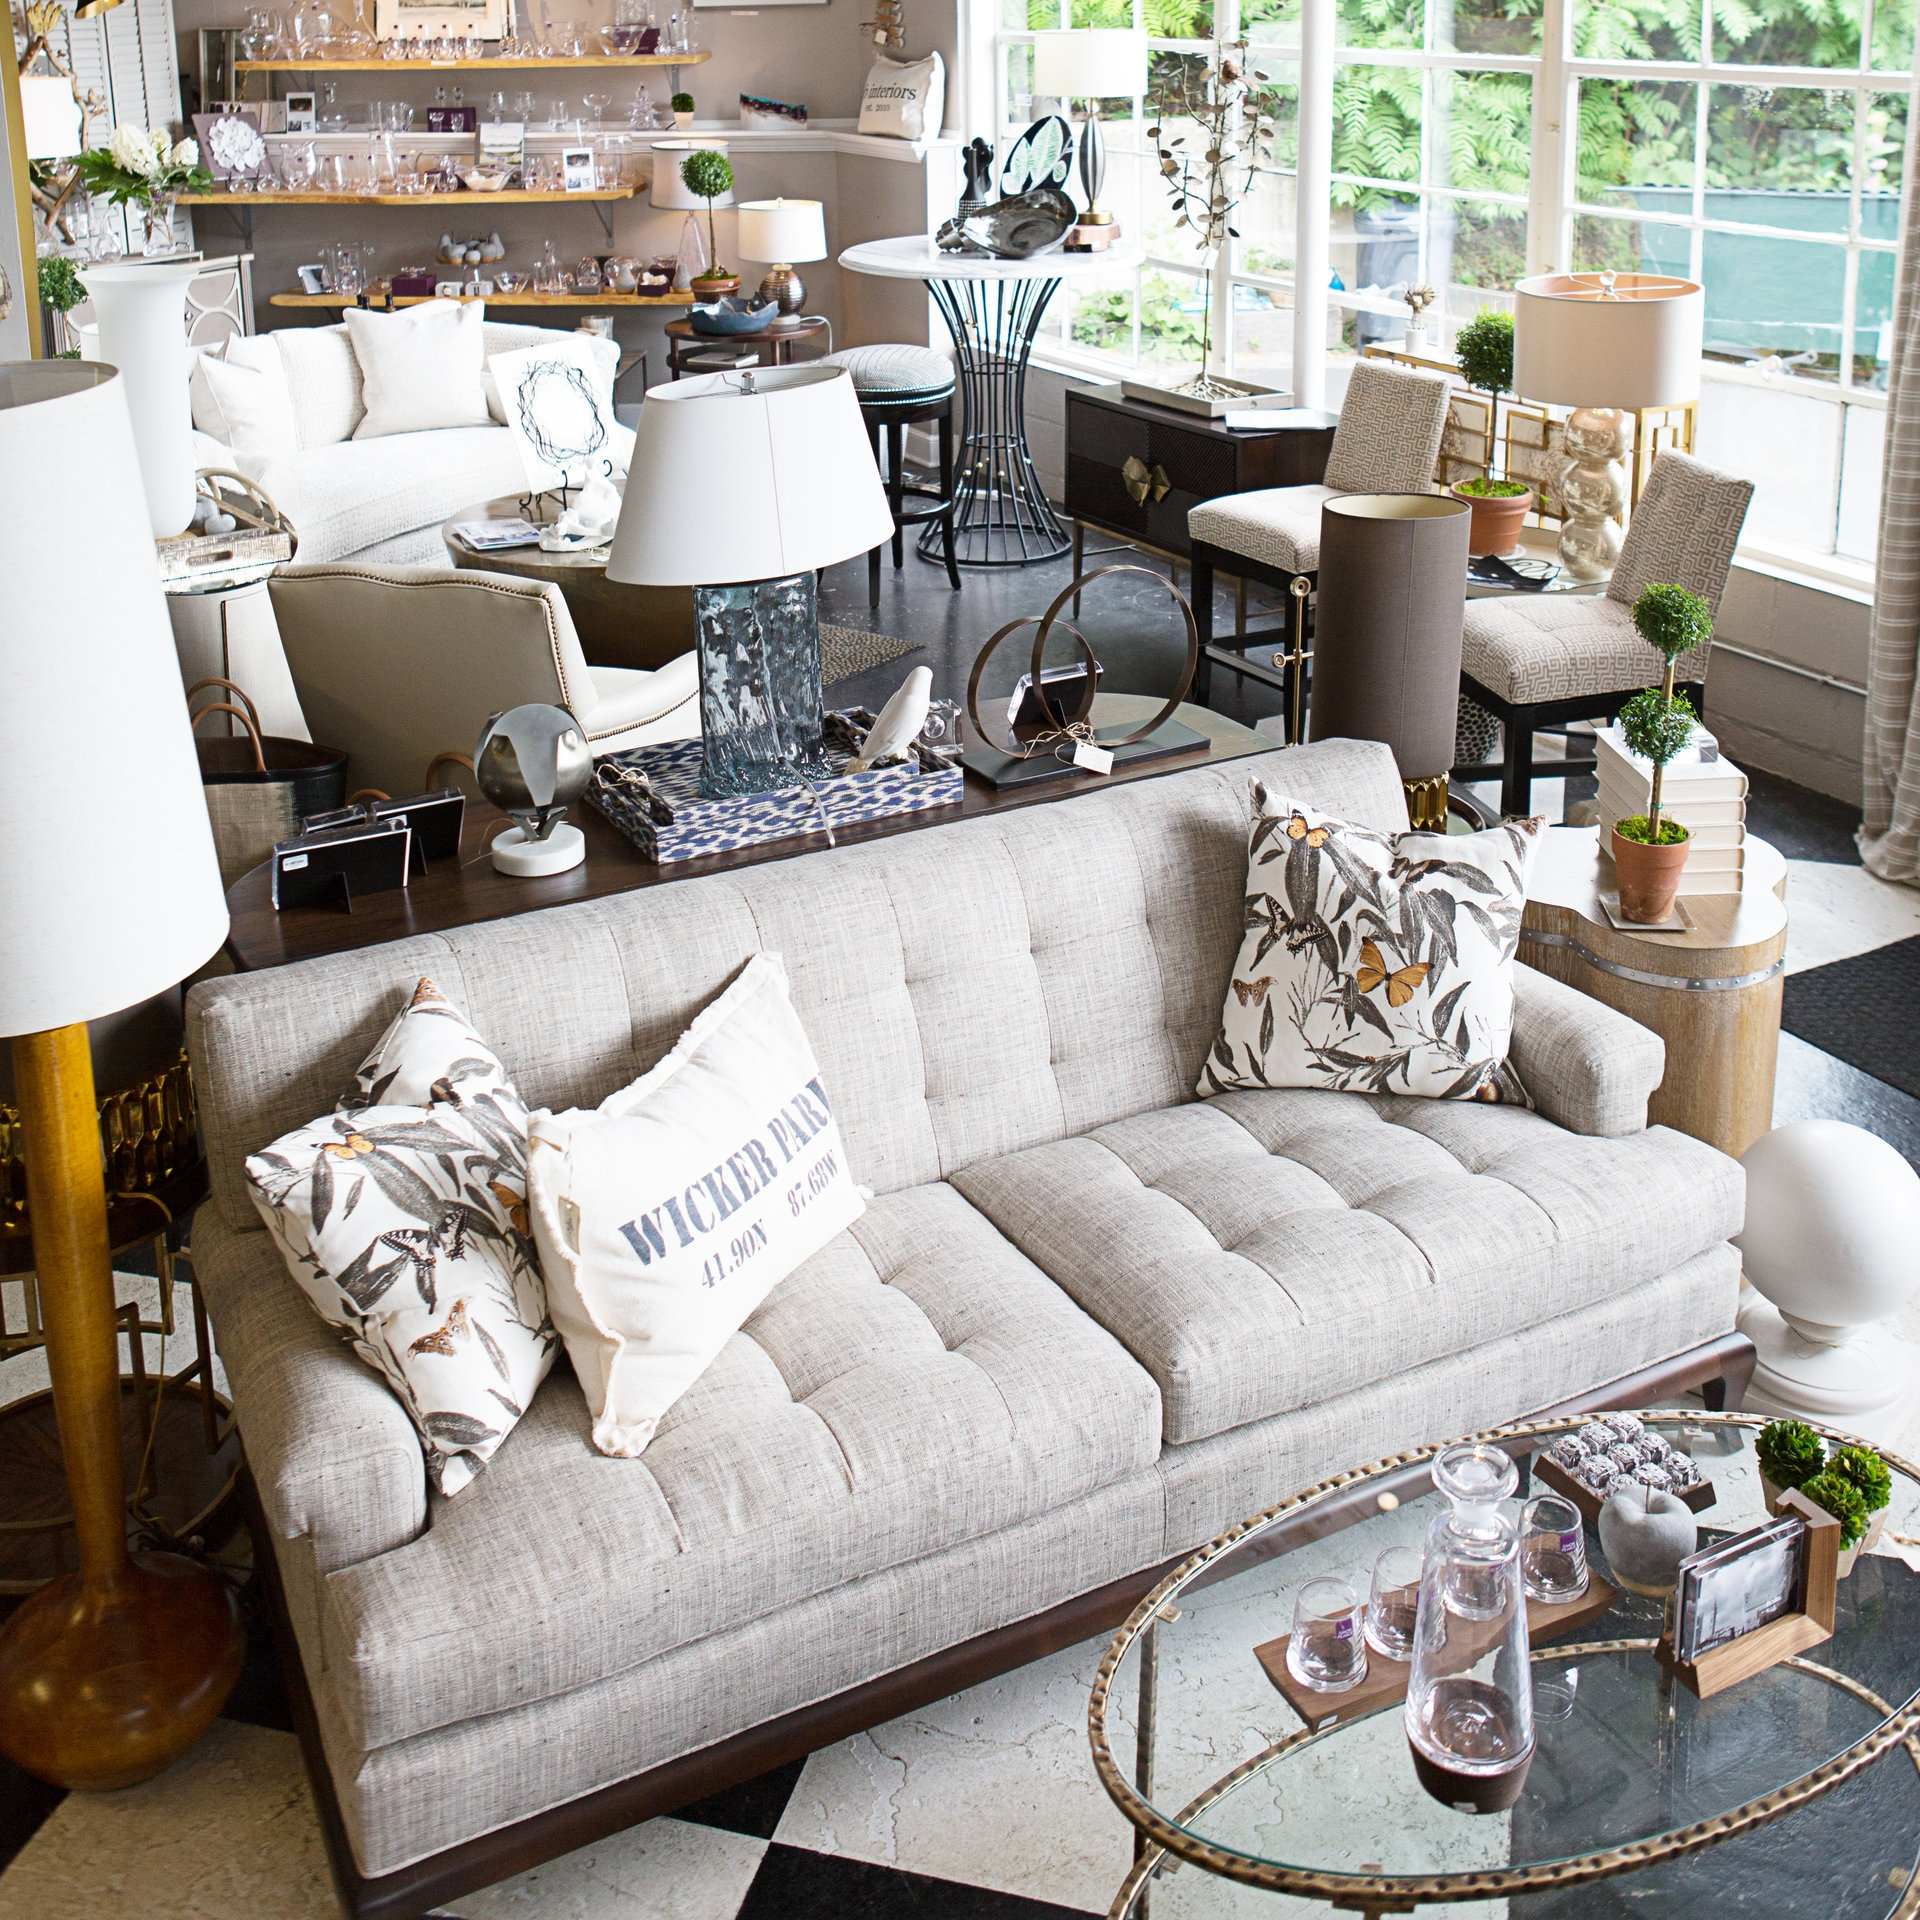 Find Design Inspiration  Our store was designed to breathe new life into the everyday, just like our homes. Spend an afternoon wandering our store, taking in the beauty, imagining the possibilities and being inspired by the magic of interior design.